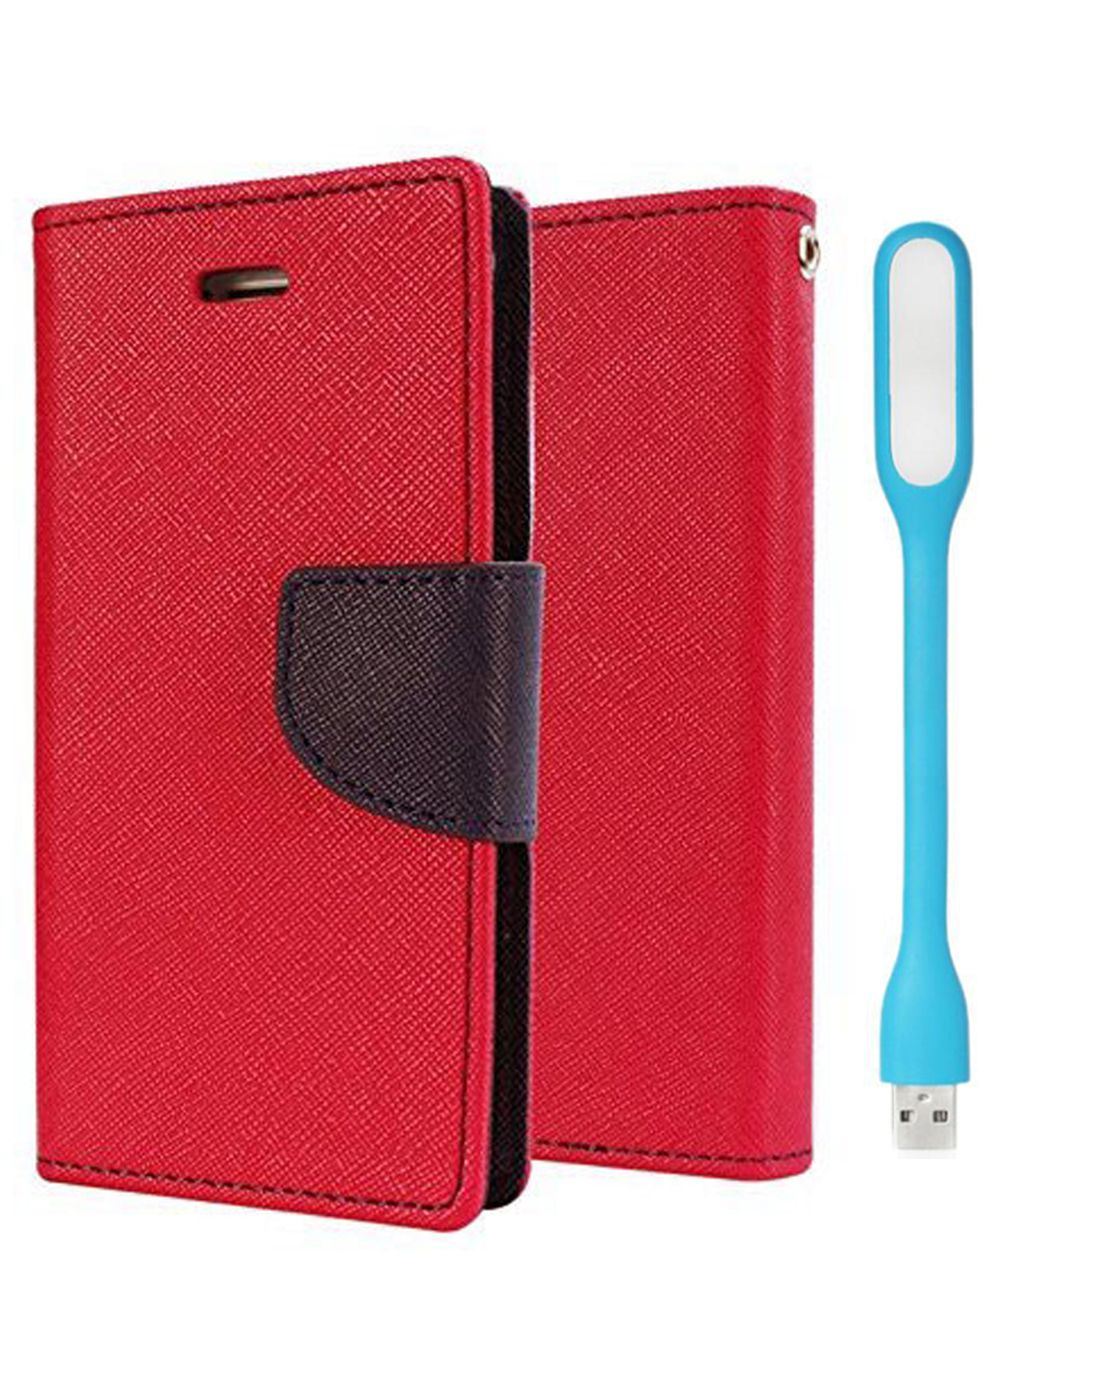 Wallet Flip Case Back Cover For Redmi note 3 - (Red) + Flexible Mini LED Stick Lamp Light By Style Crome